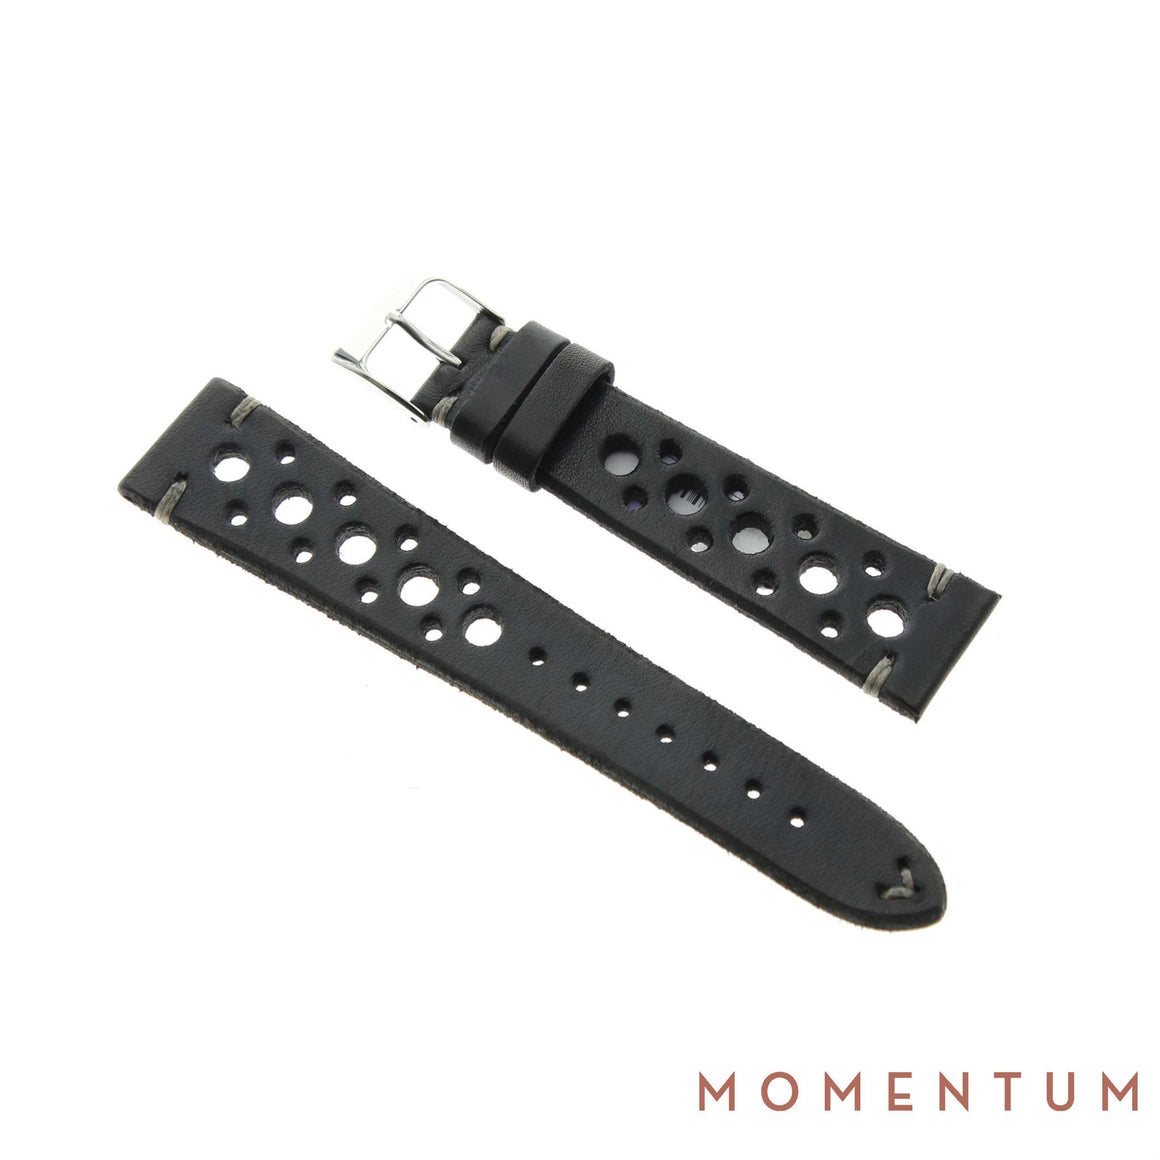 Vintage Strap - Black Berluti style with holes - Calf Leather - Momentum Dubai